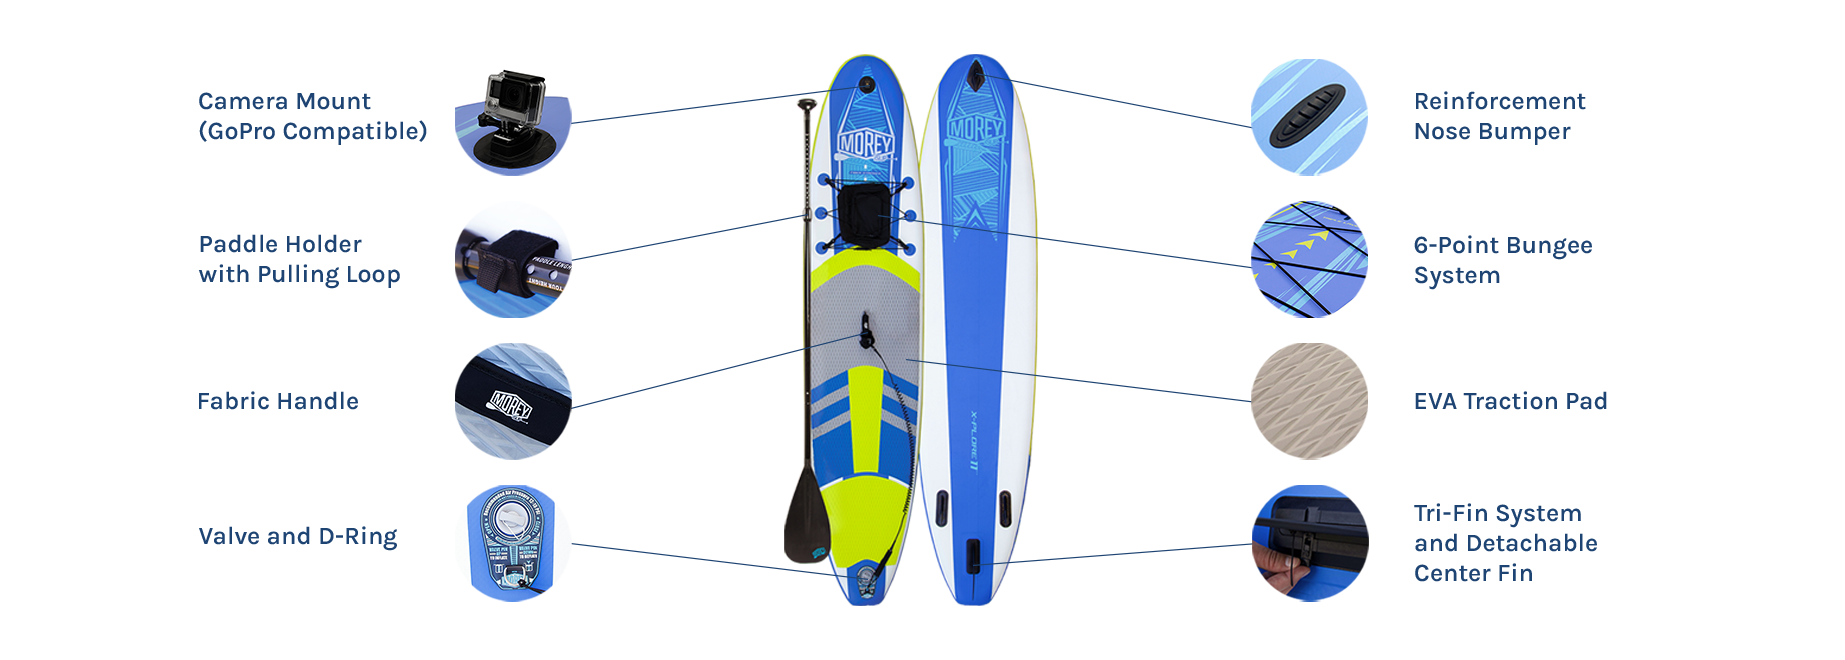 Morey SUP TRAVLR zoom in parts, highlight features